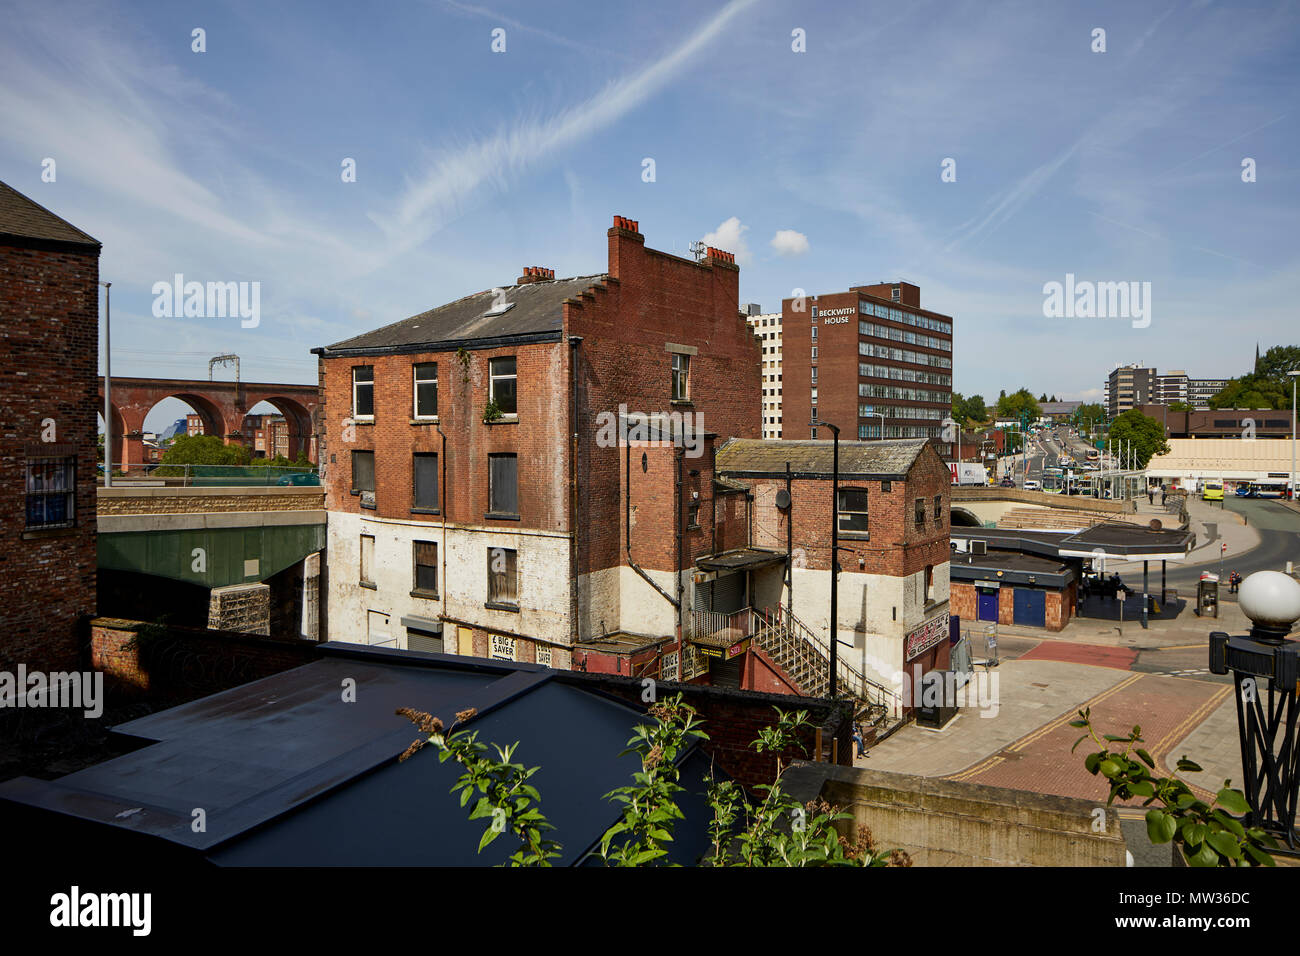 Sites de rencontre dans Stockport